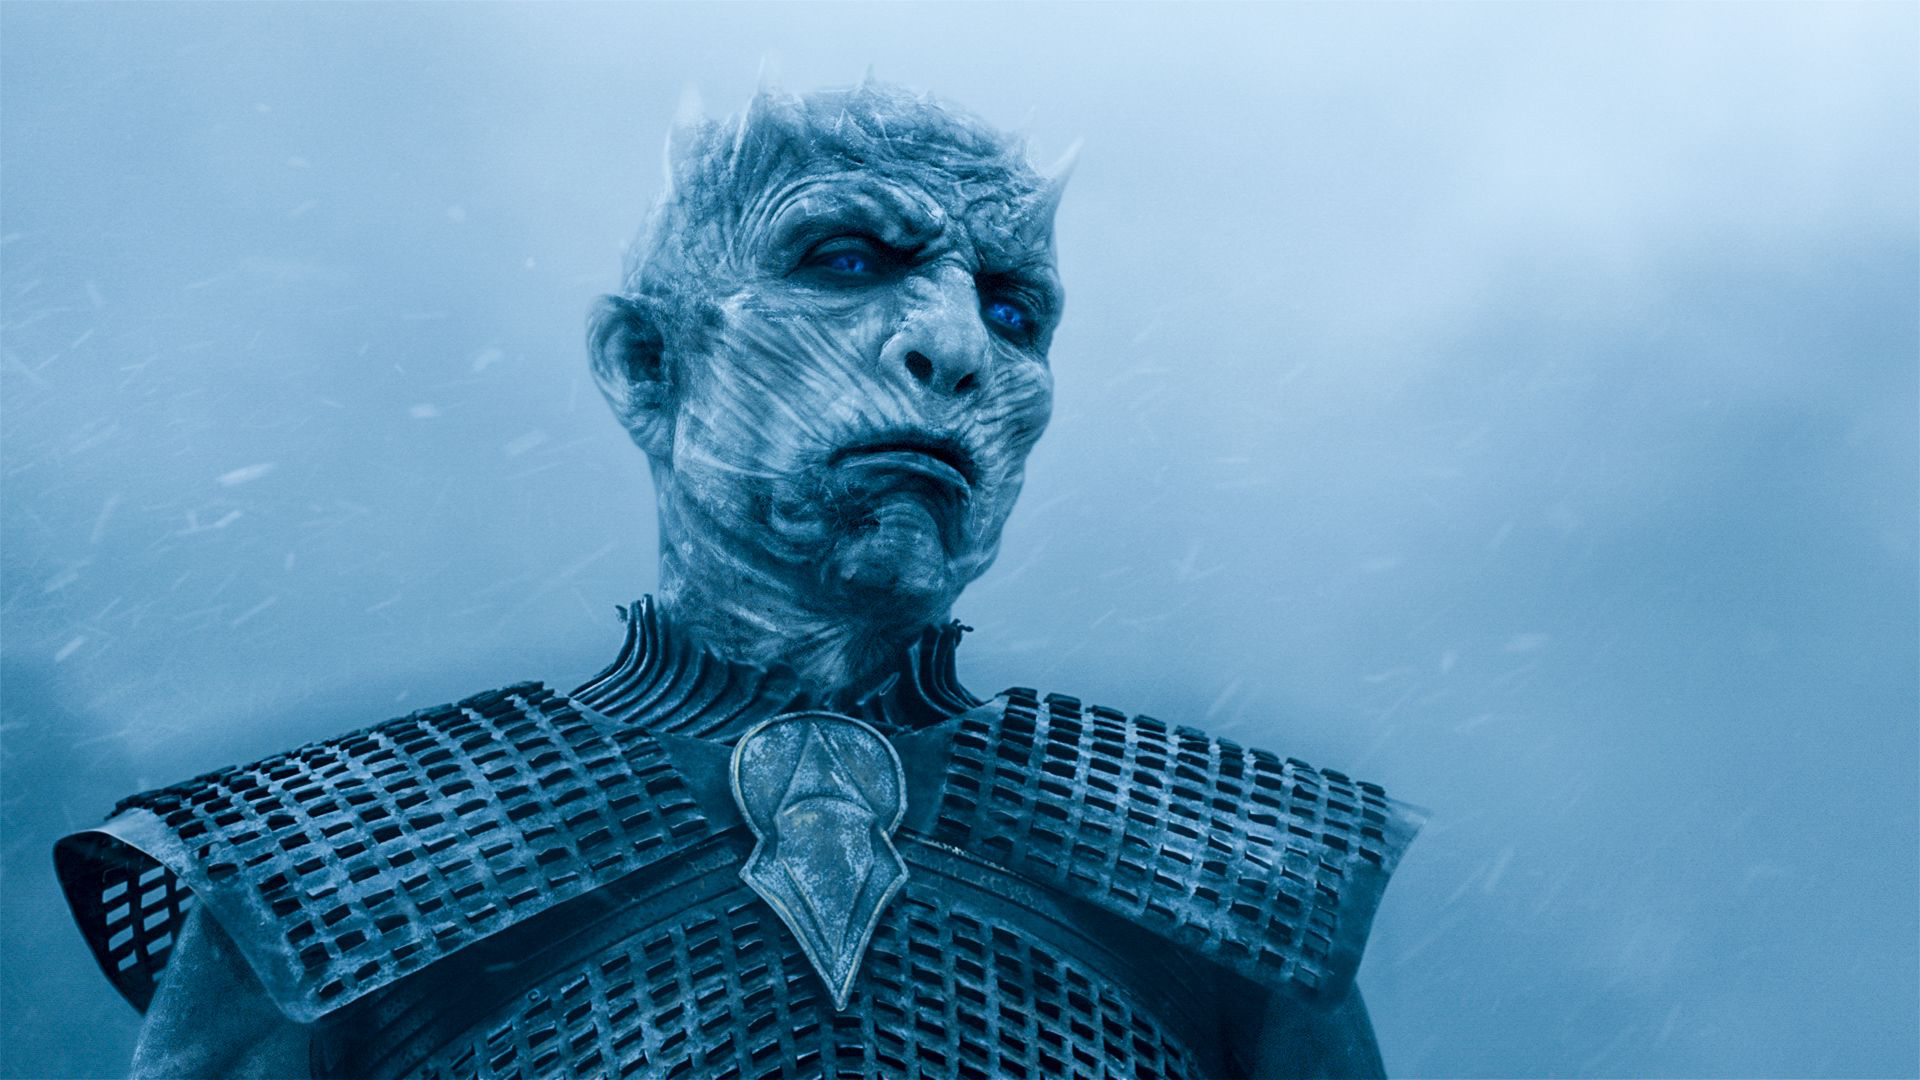 Night King 'Game of Thrones' actor's makeup-free selfies shock fans - Fox News thumbnail